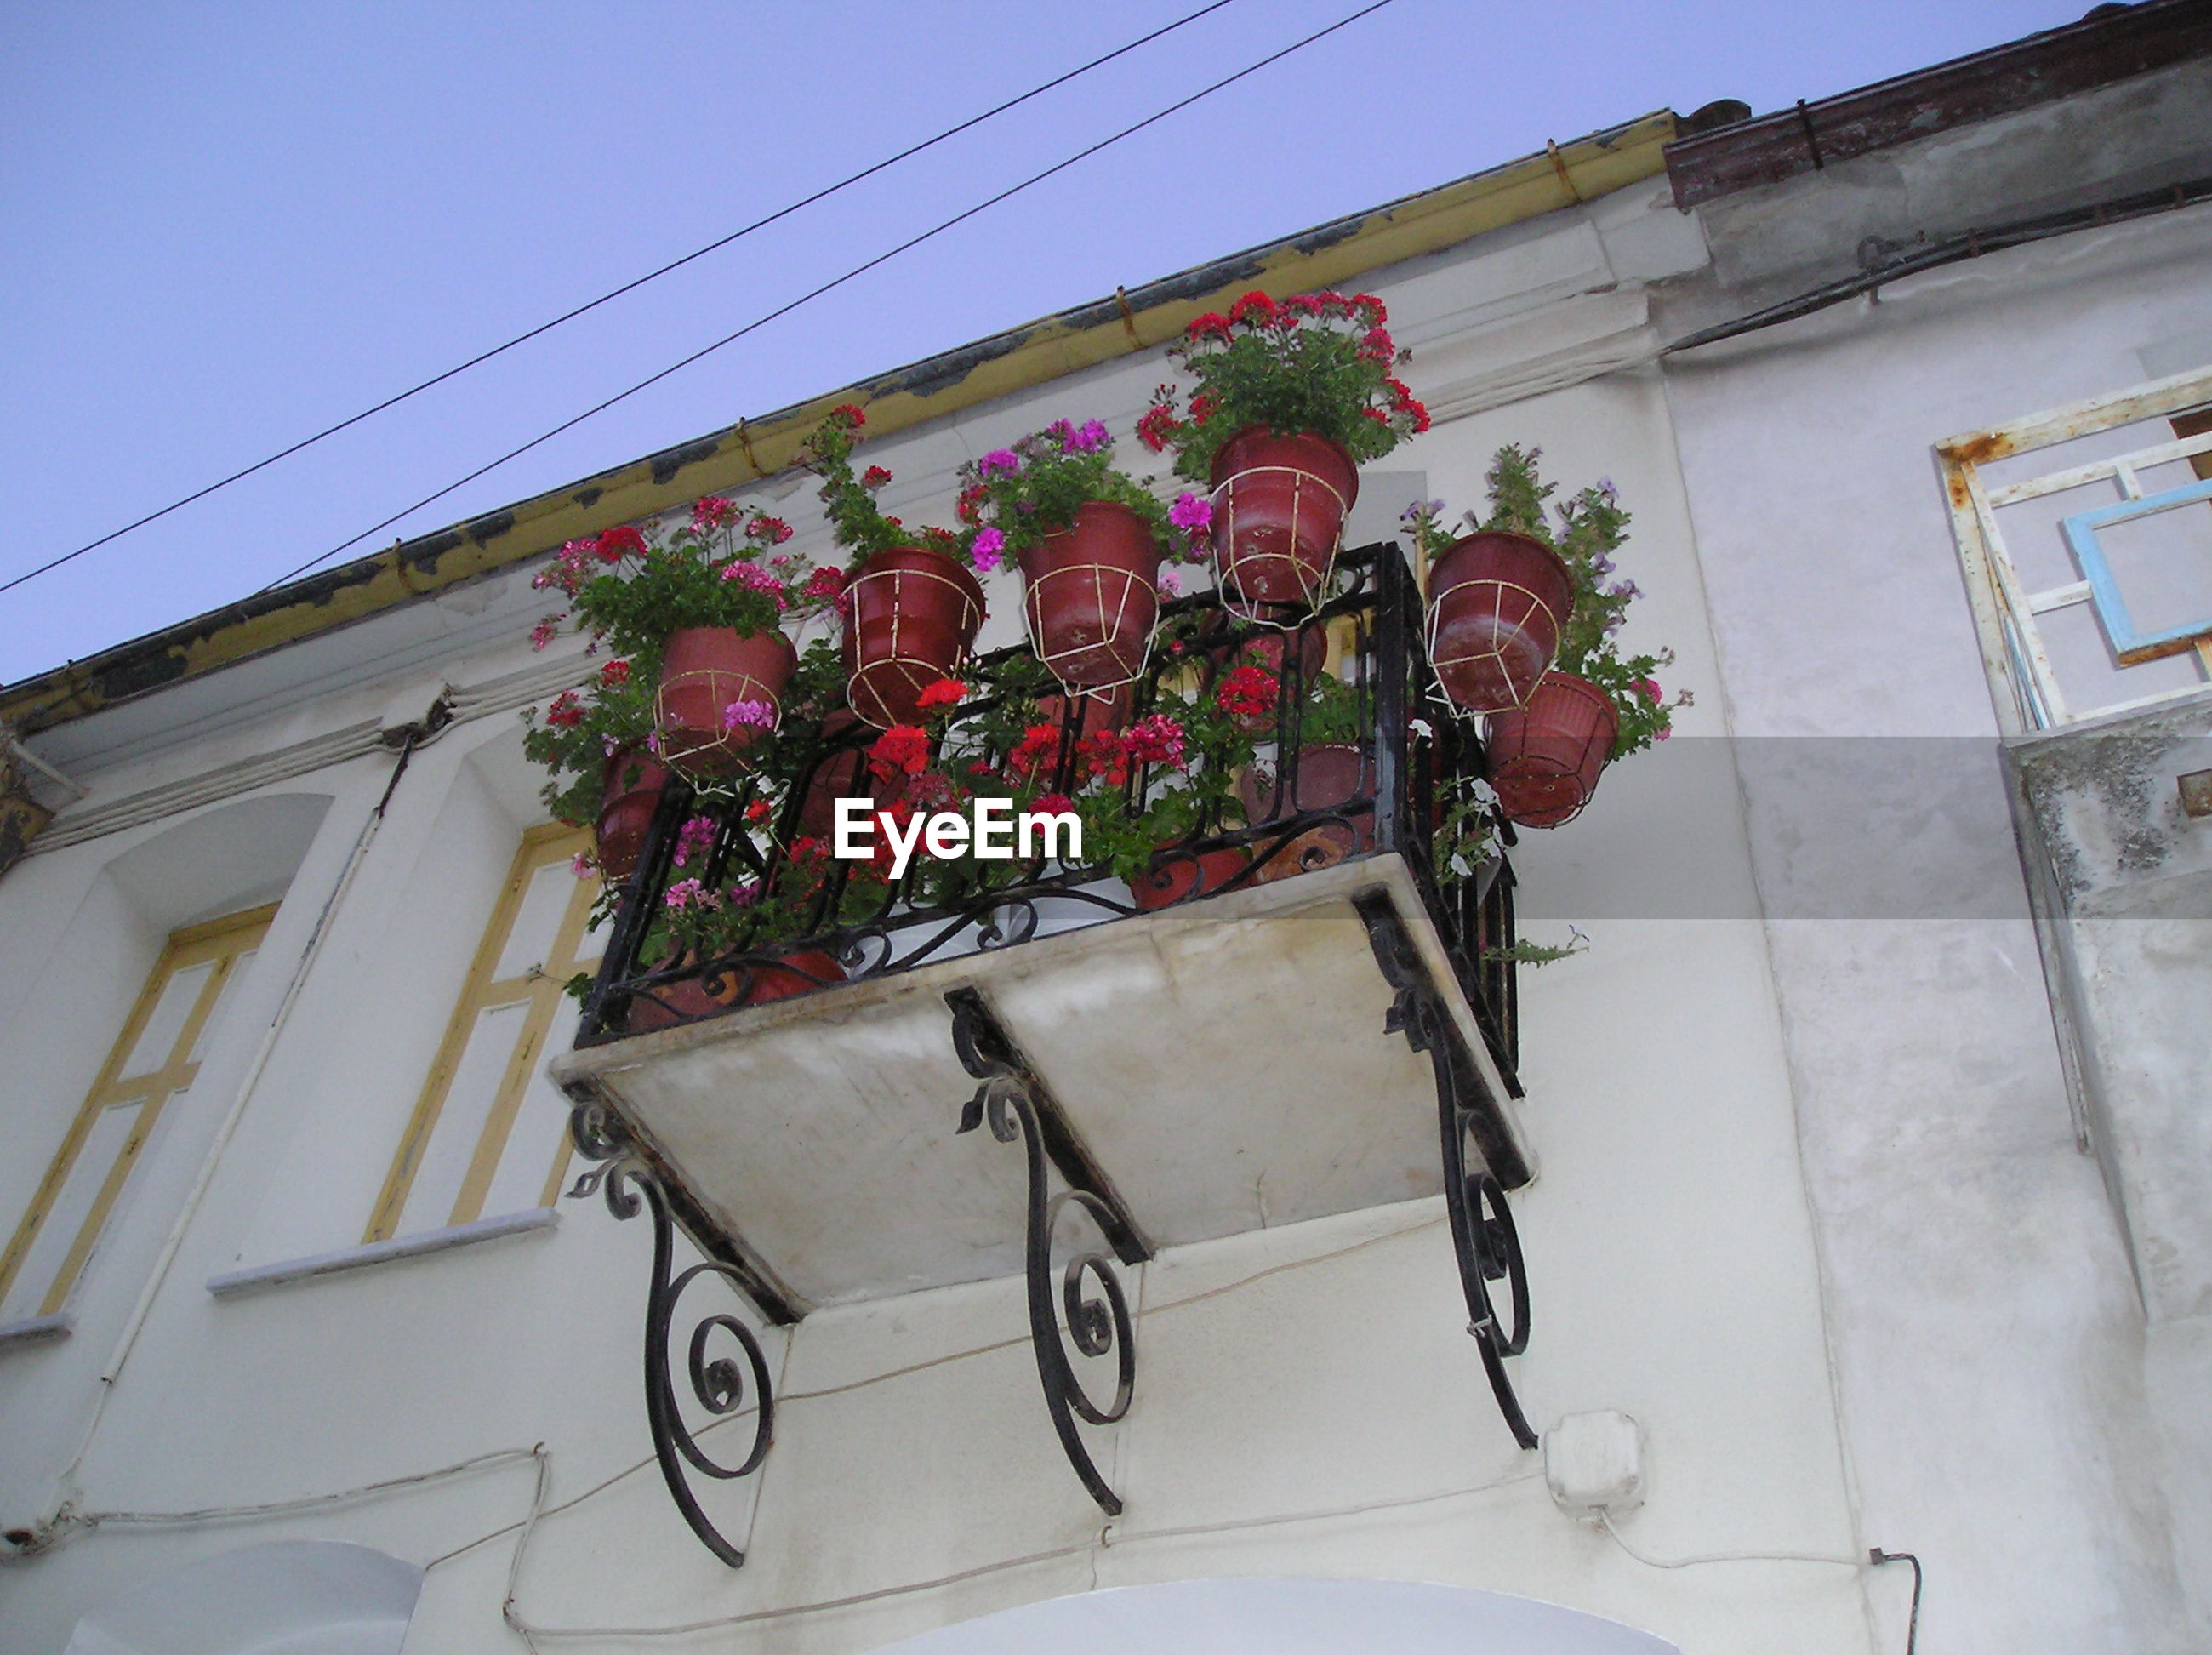 Low angle view of potted plants on balcony railing